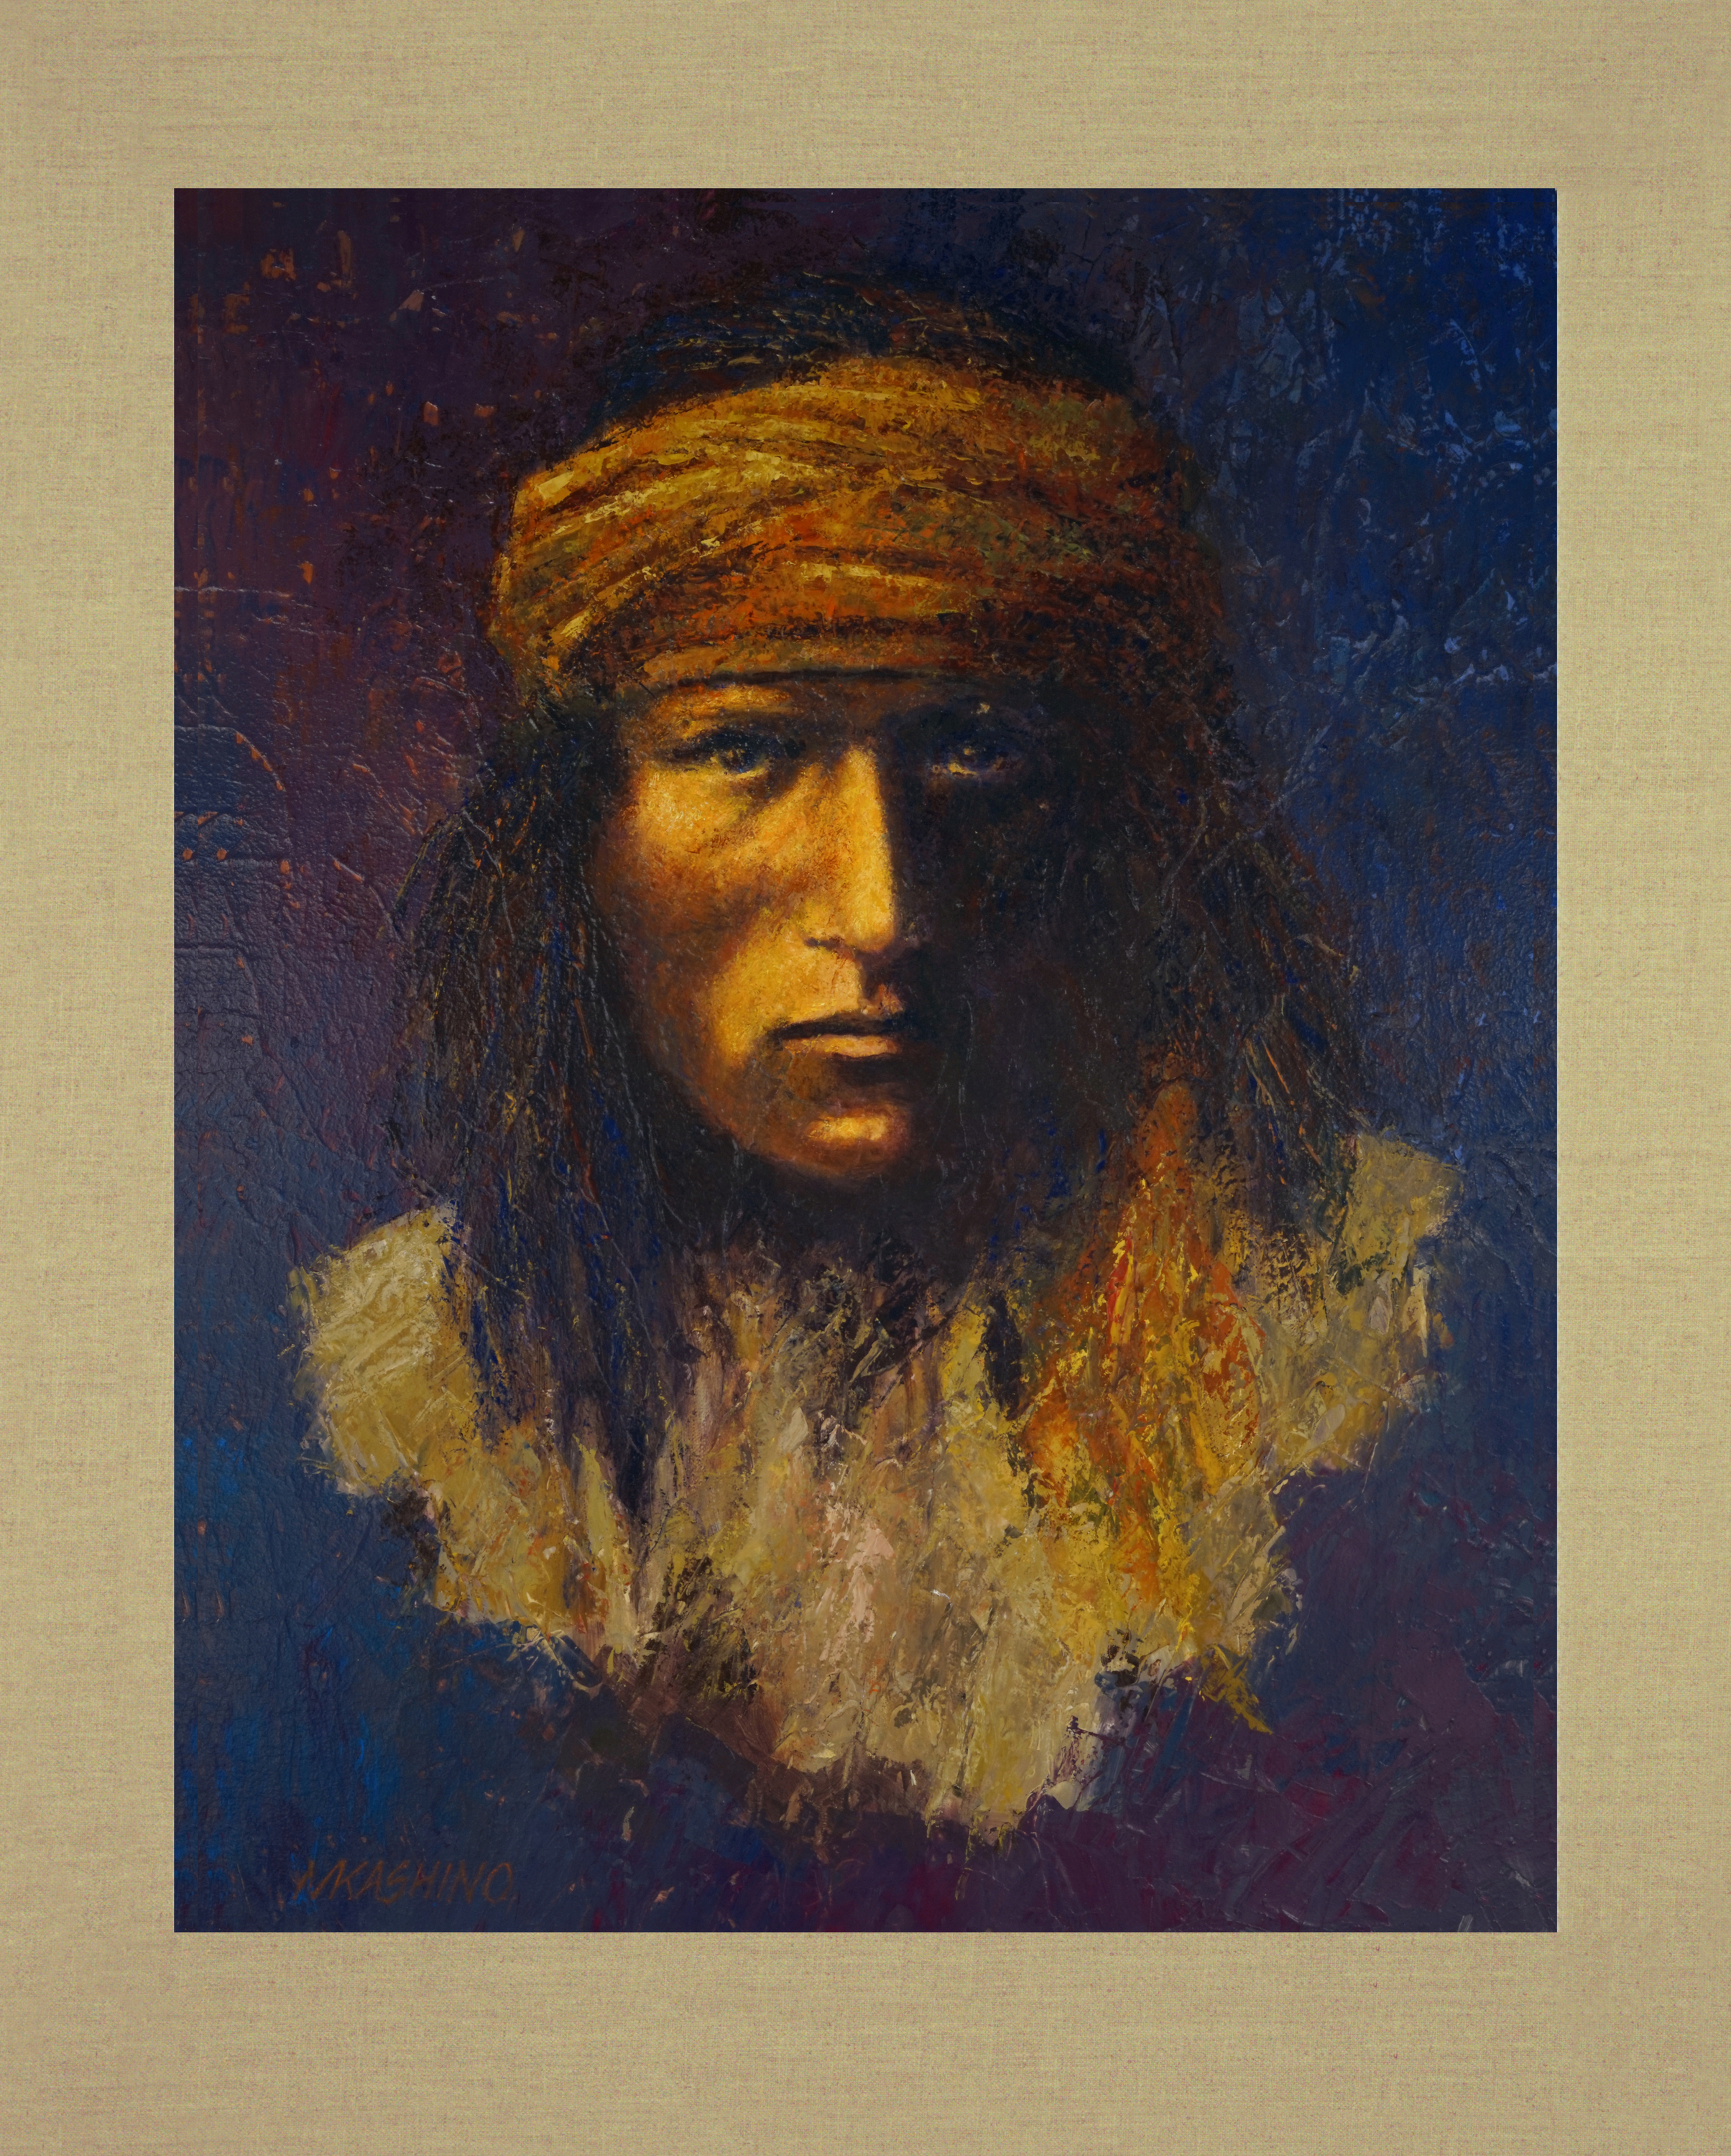 Naiche last chief of chiricahua apache original meudz9